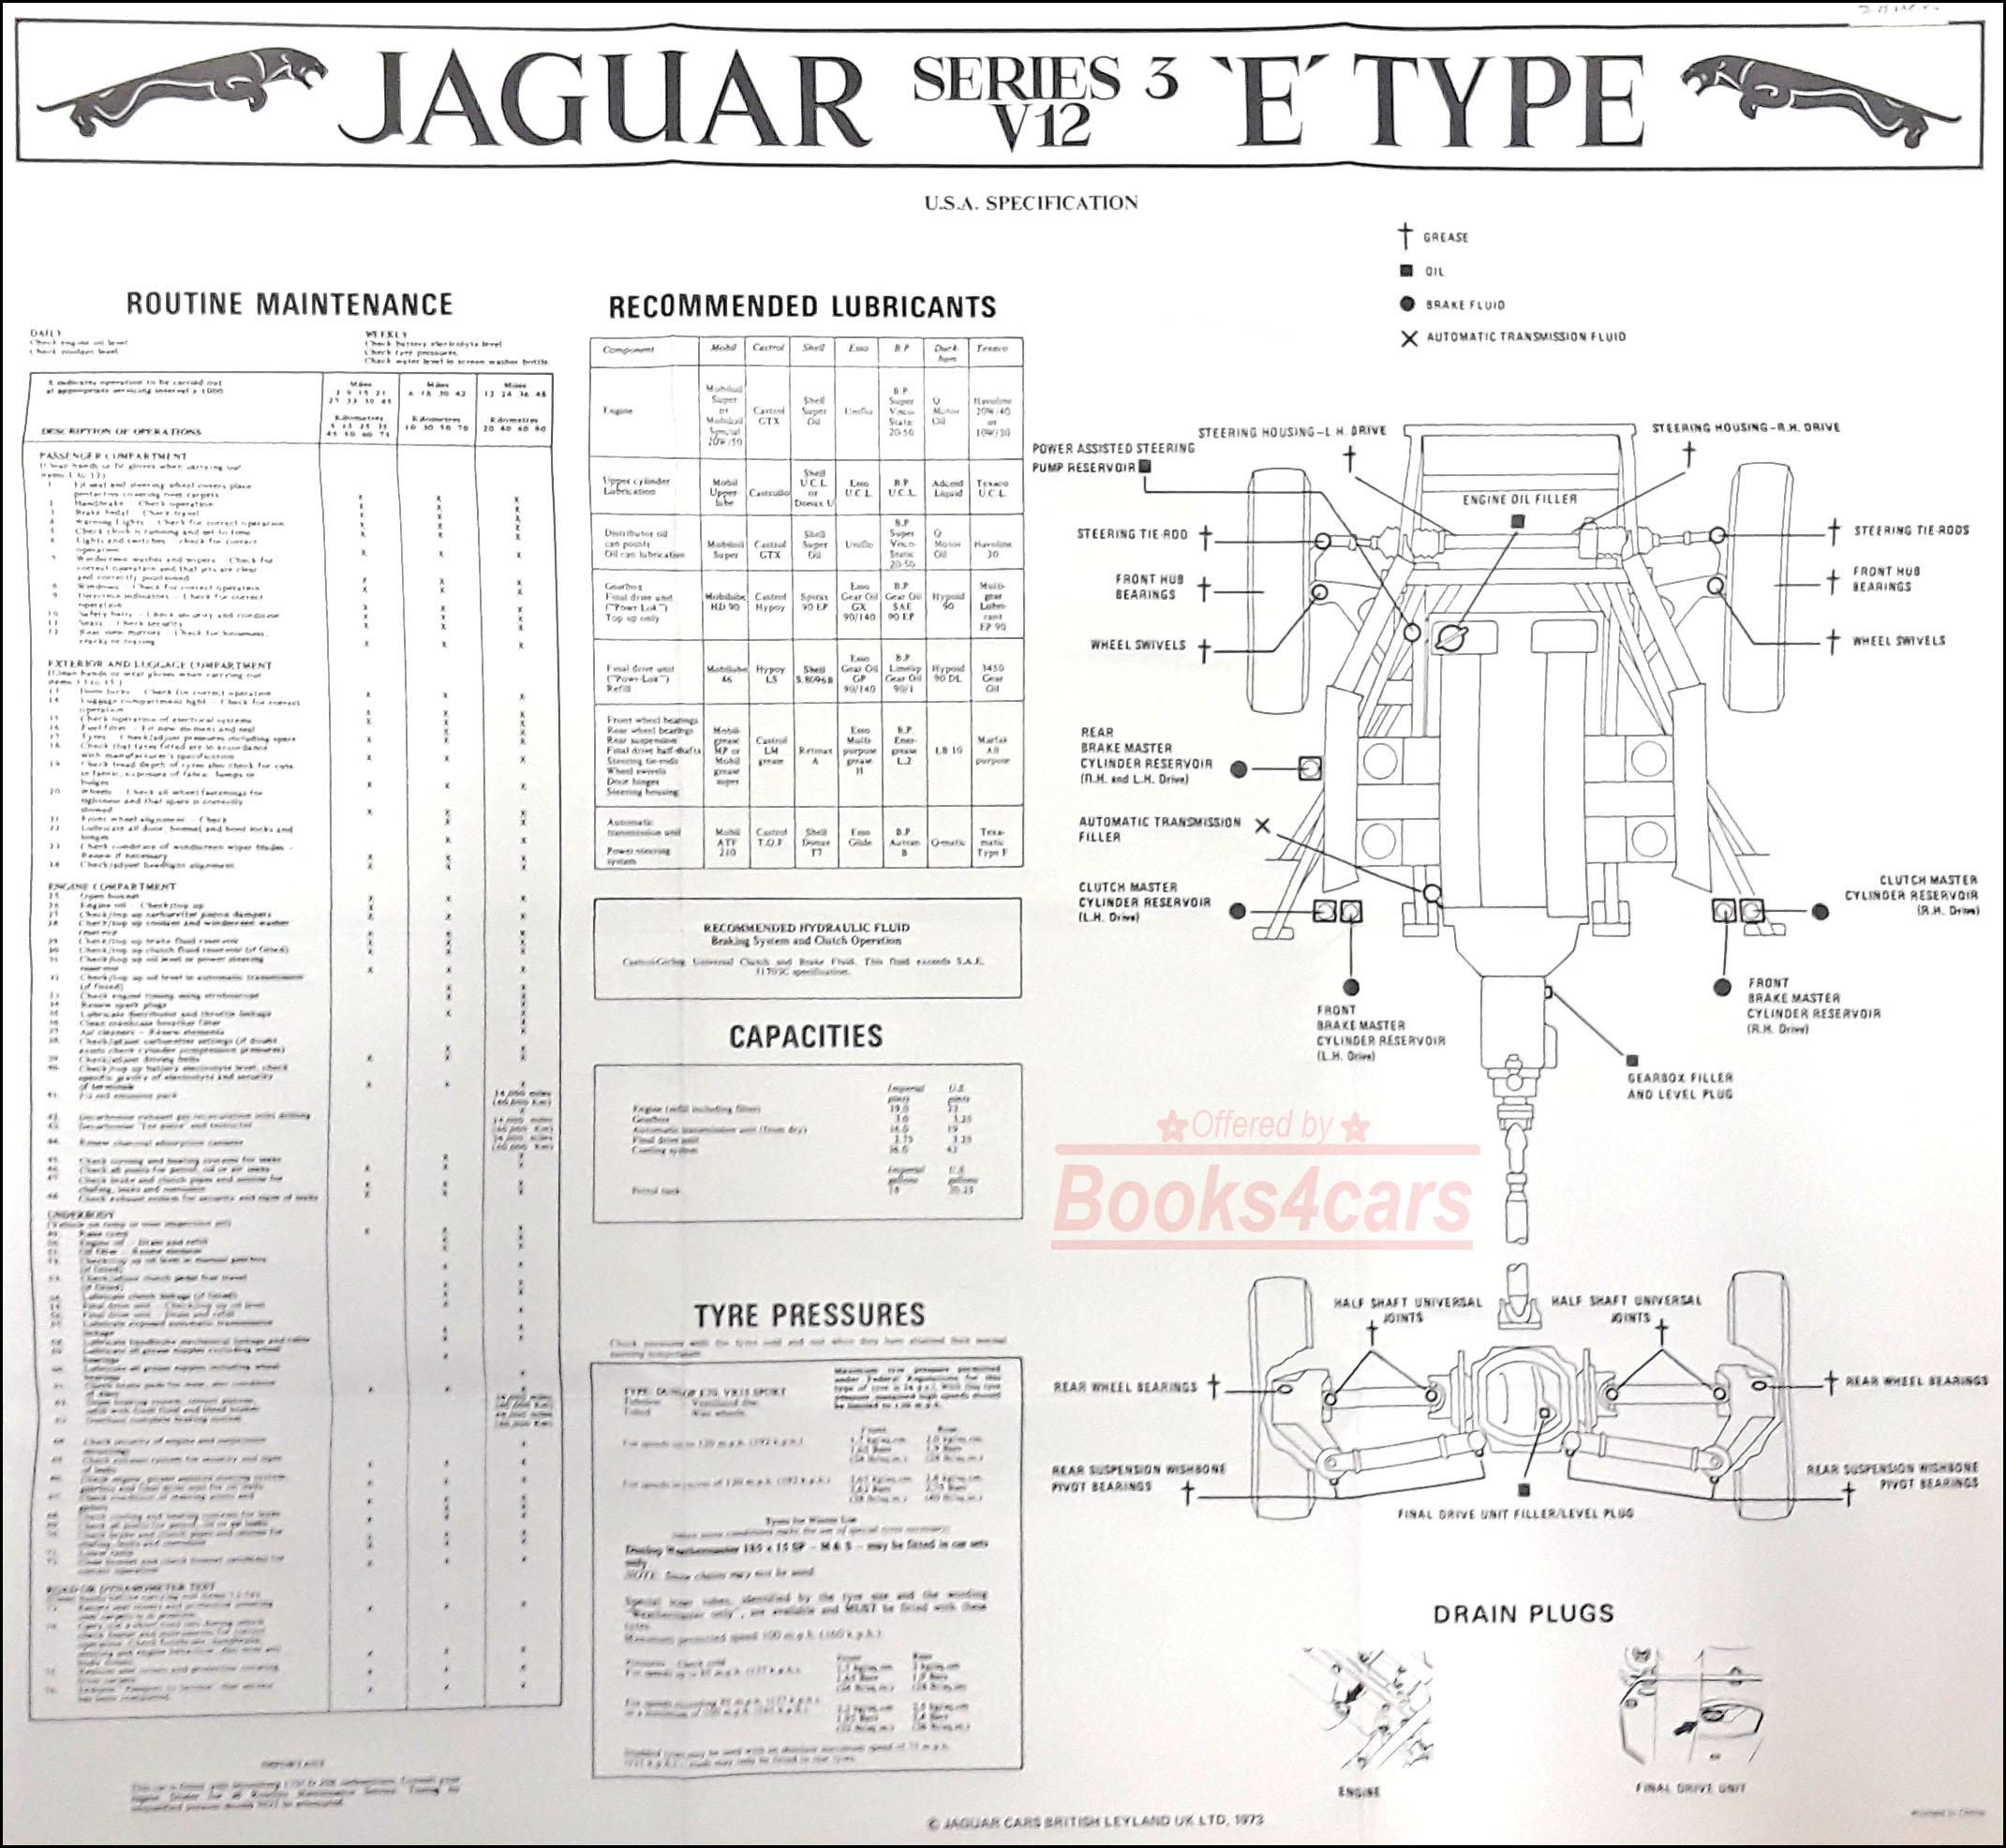 Jaguar Xke Wiring Diagram Schematics 1975 Cadillac Maintenance E Type Electrical V12 S3 1971 Ebay 1982 Xjs